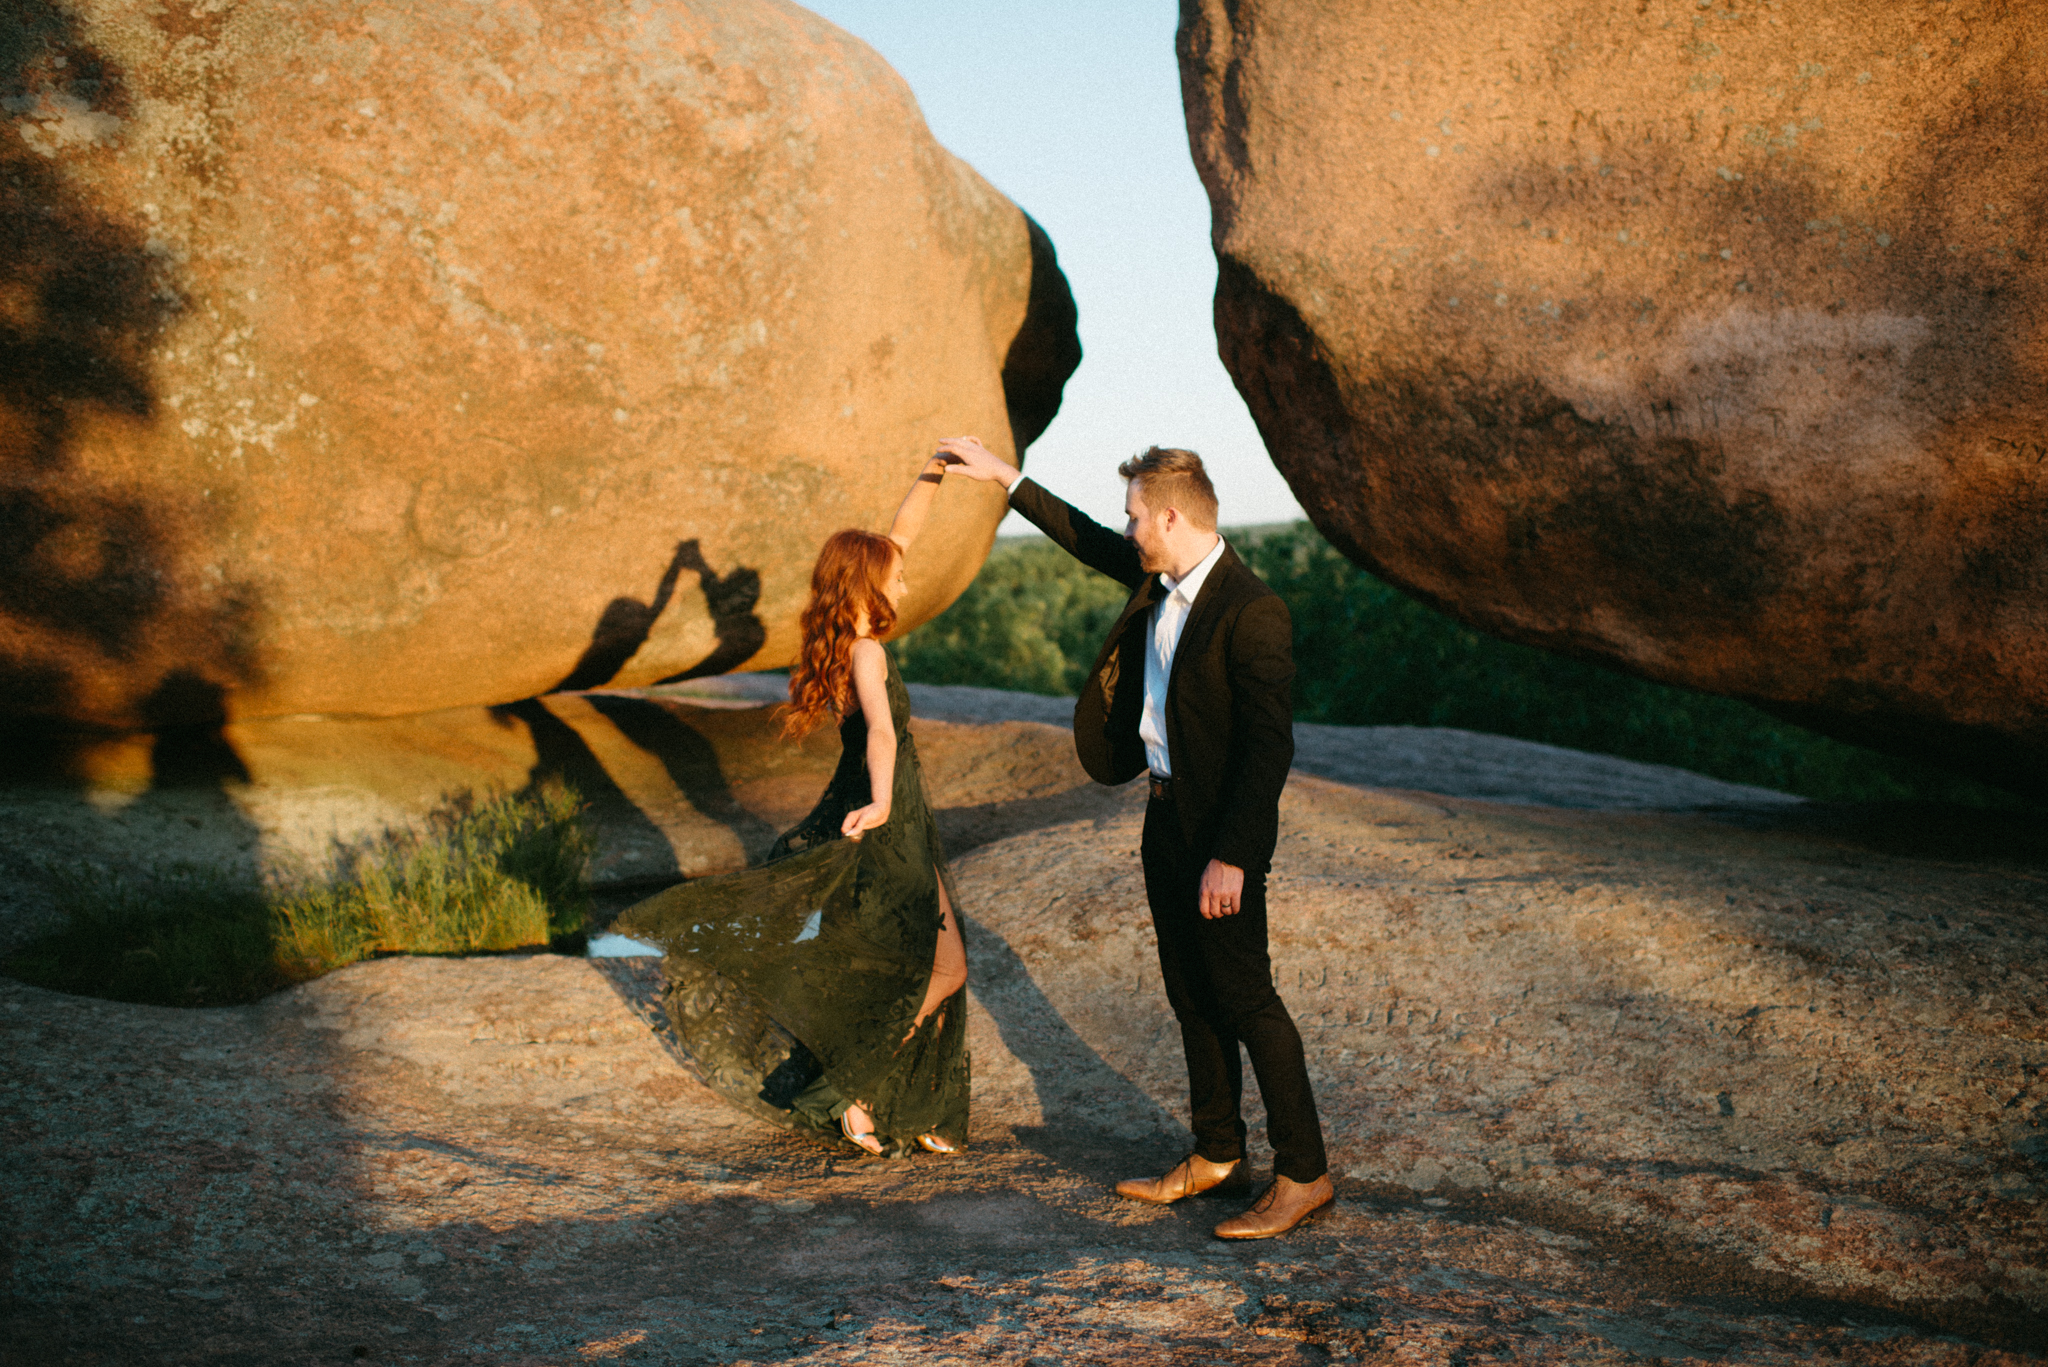 Zach and Rosalie - Missouri Wedding Photographer - Elephant rocks state park anniversary session -7201.jpg